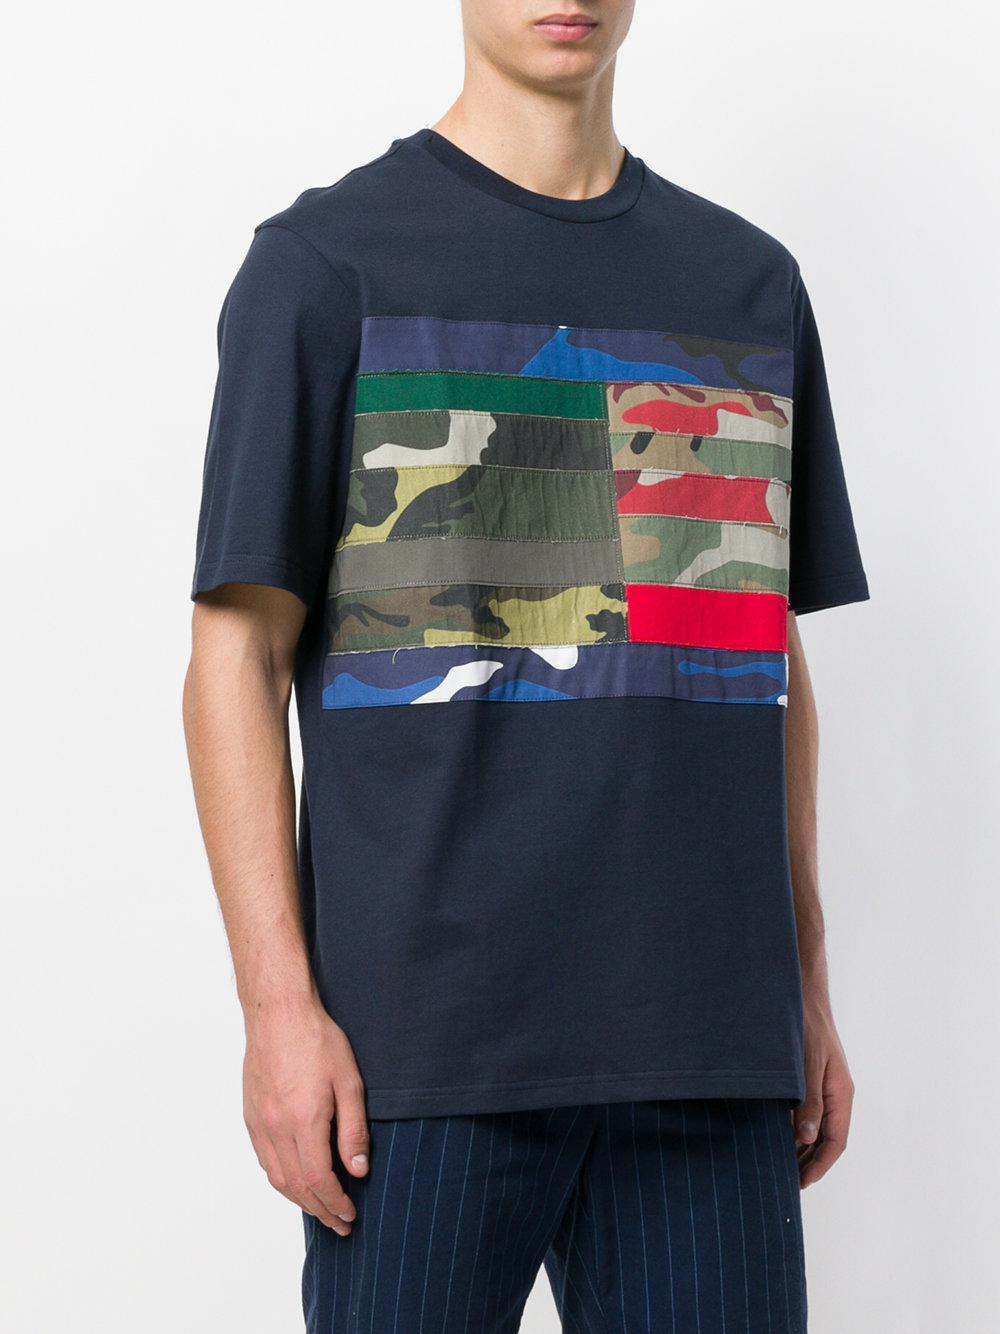 172eaa46d Tommy Hilfiger Camo T-shirt in Blue for Men - Lyst